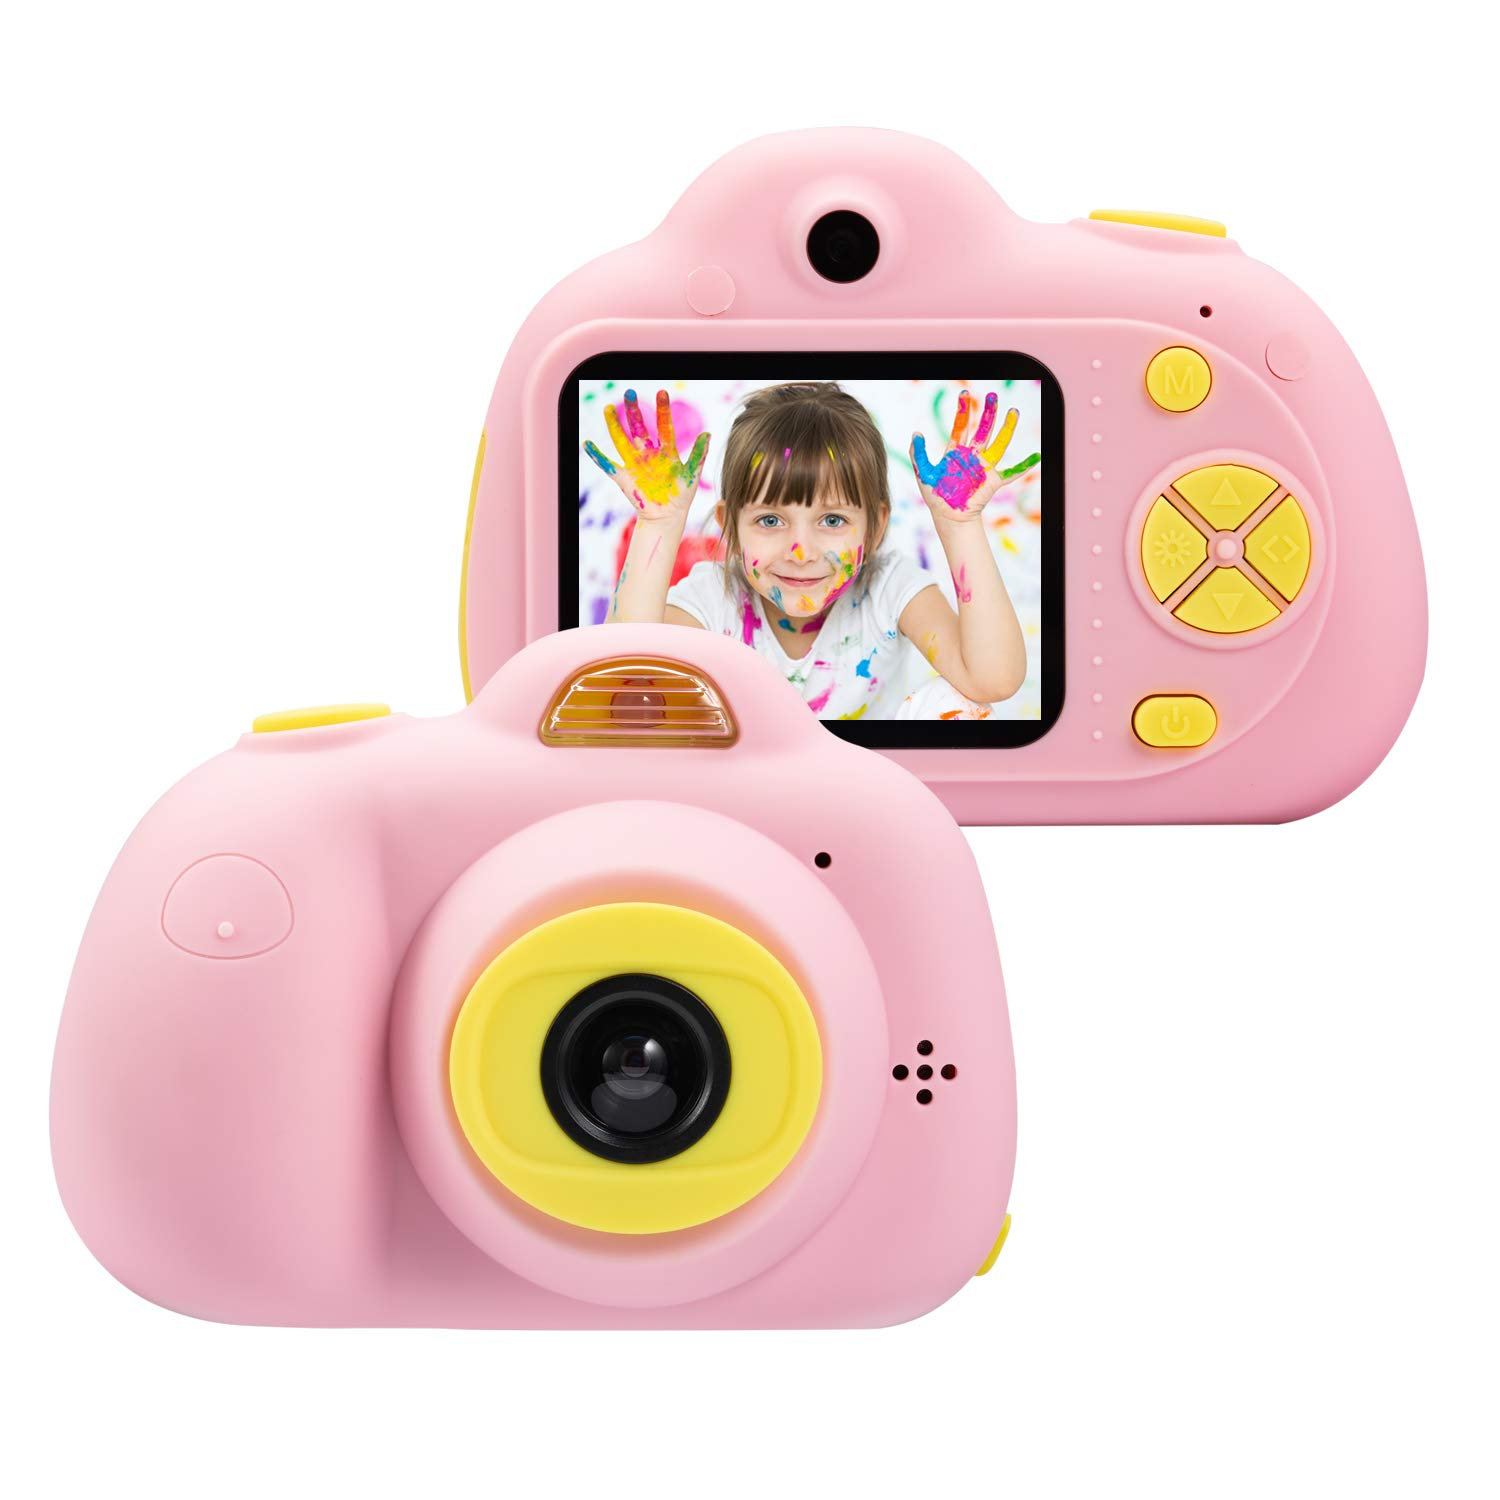 omzer Kids Camera Gifts for 4-8 Year Old Girls, Shockproof Cameras Great Gift Mini Child Camcorderr for Little Girl with Soft Silicone Shell for Outdoor Play,Pink(16GB Memory Card Included) by omzer